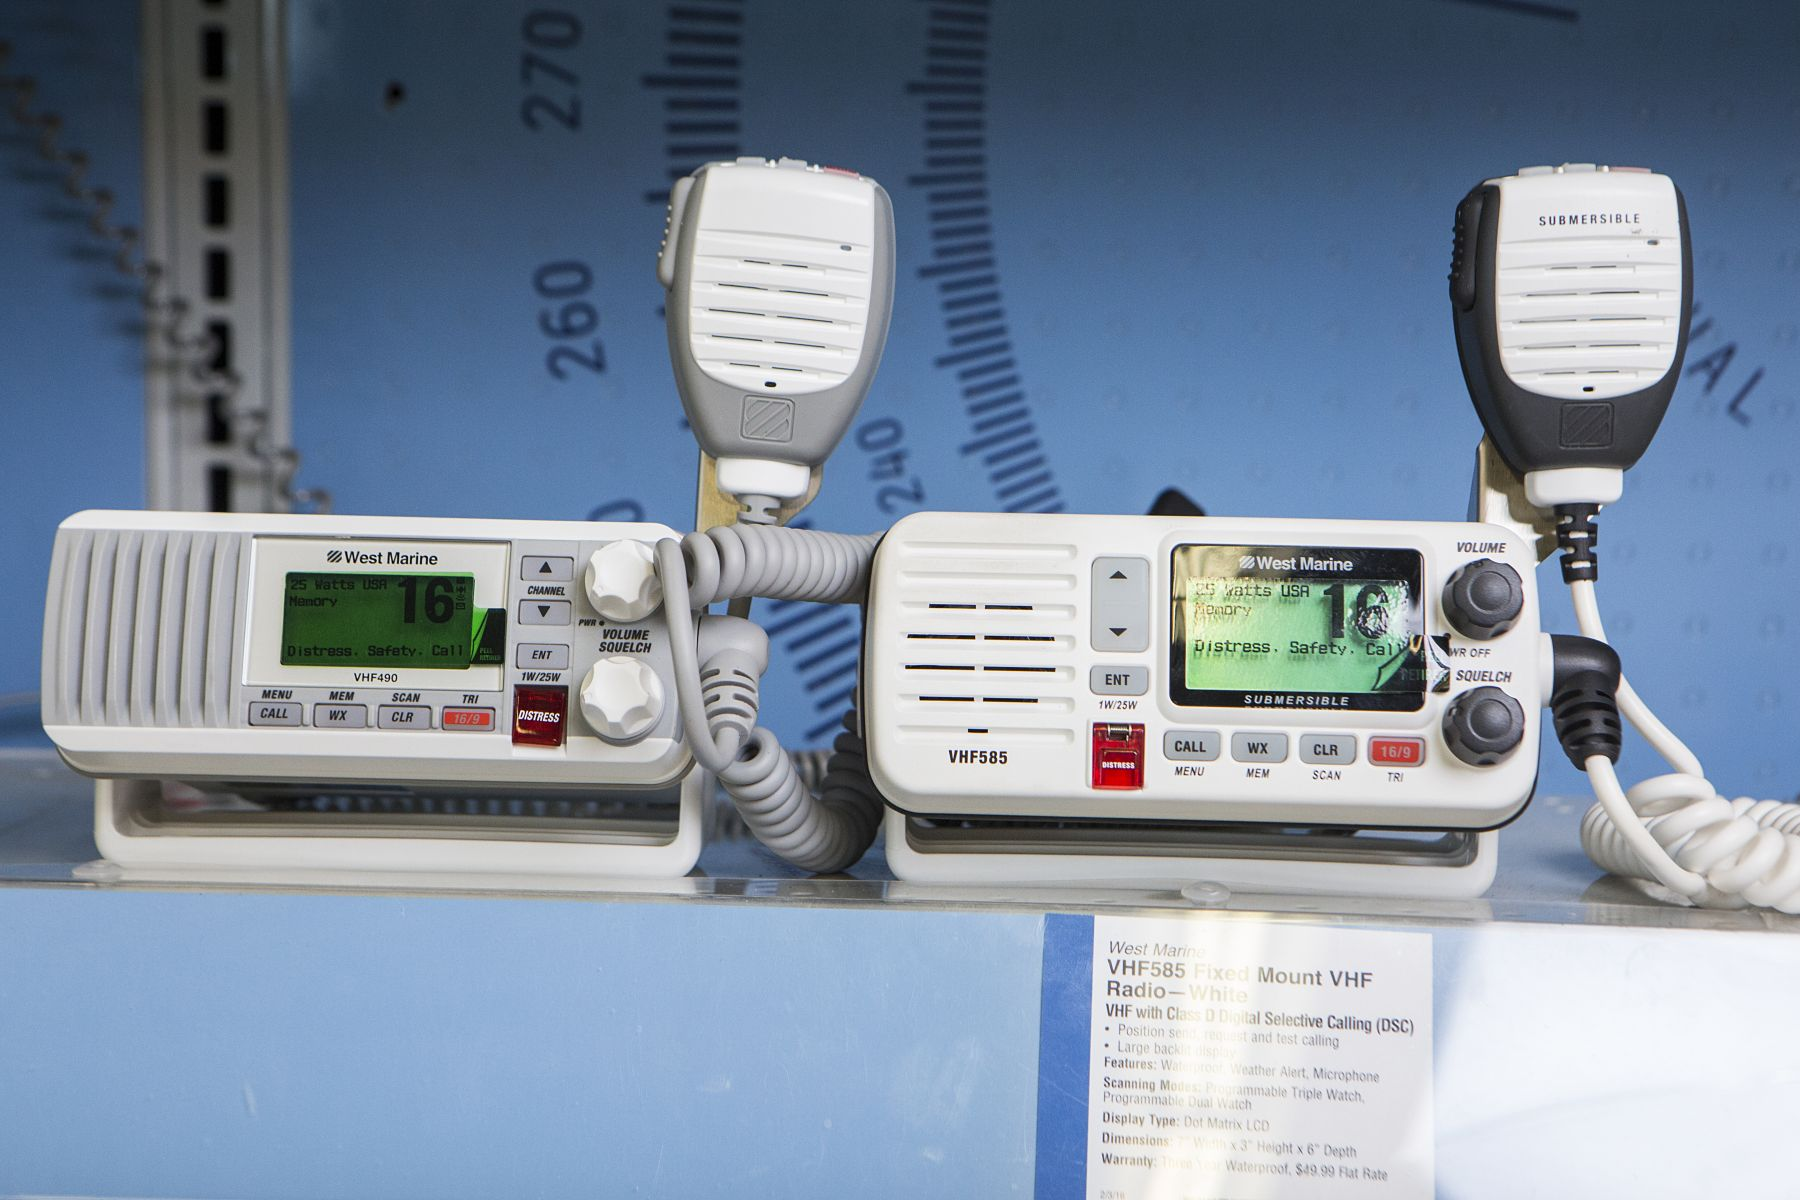 VHF radios on display at a retail outlet.